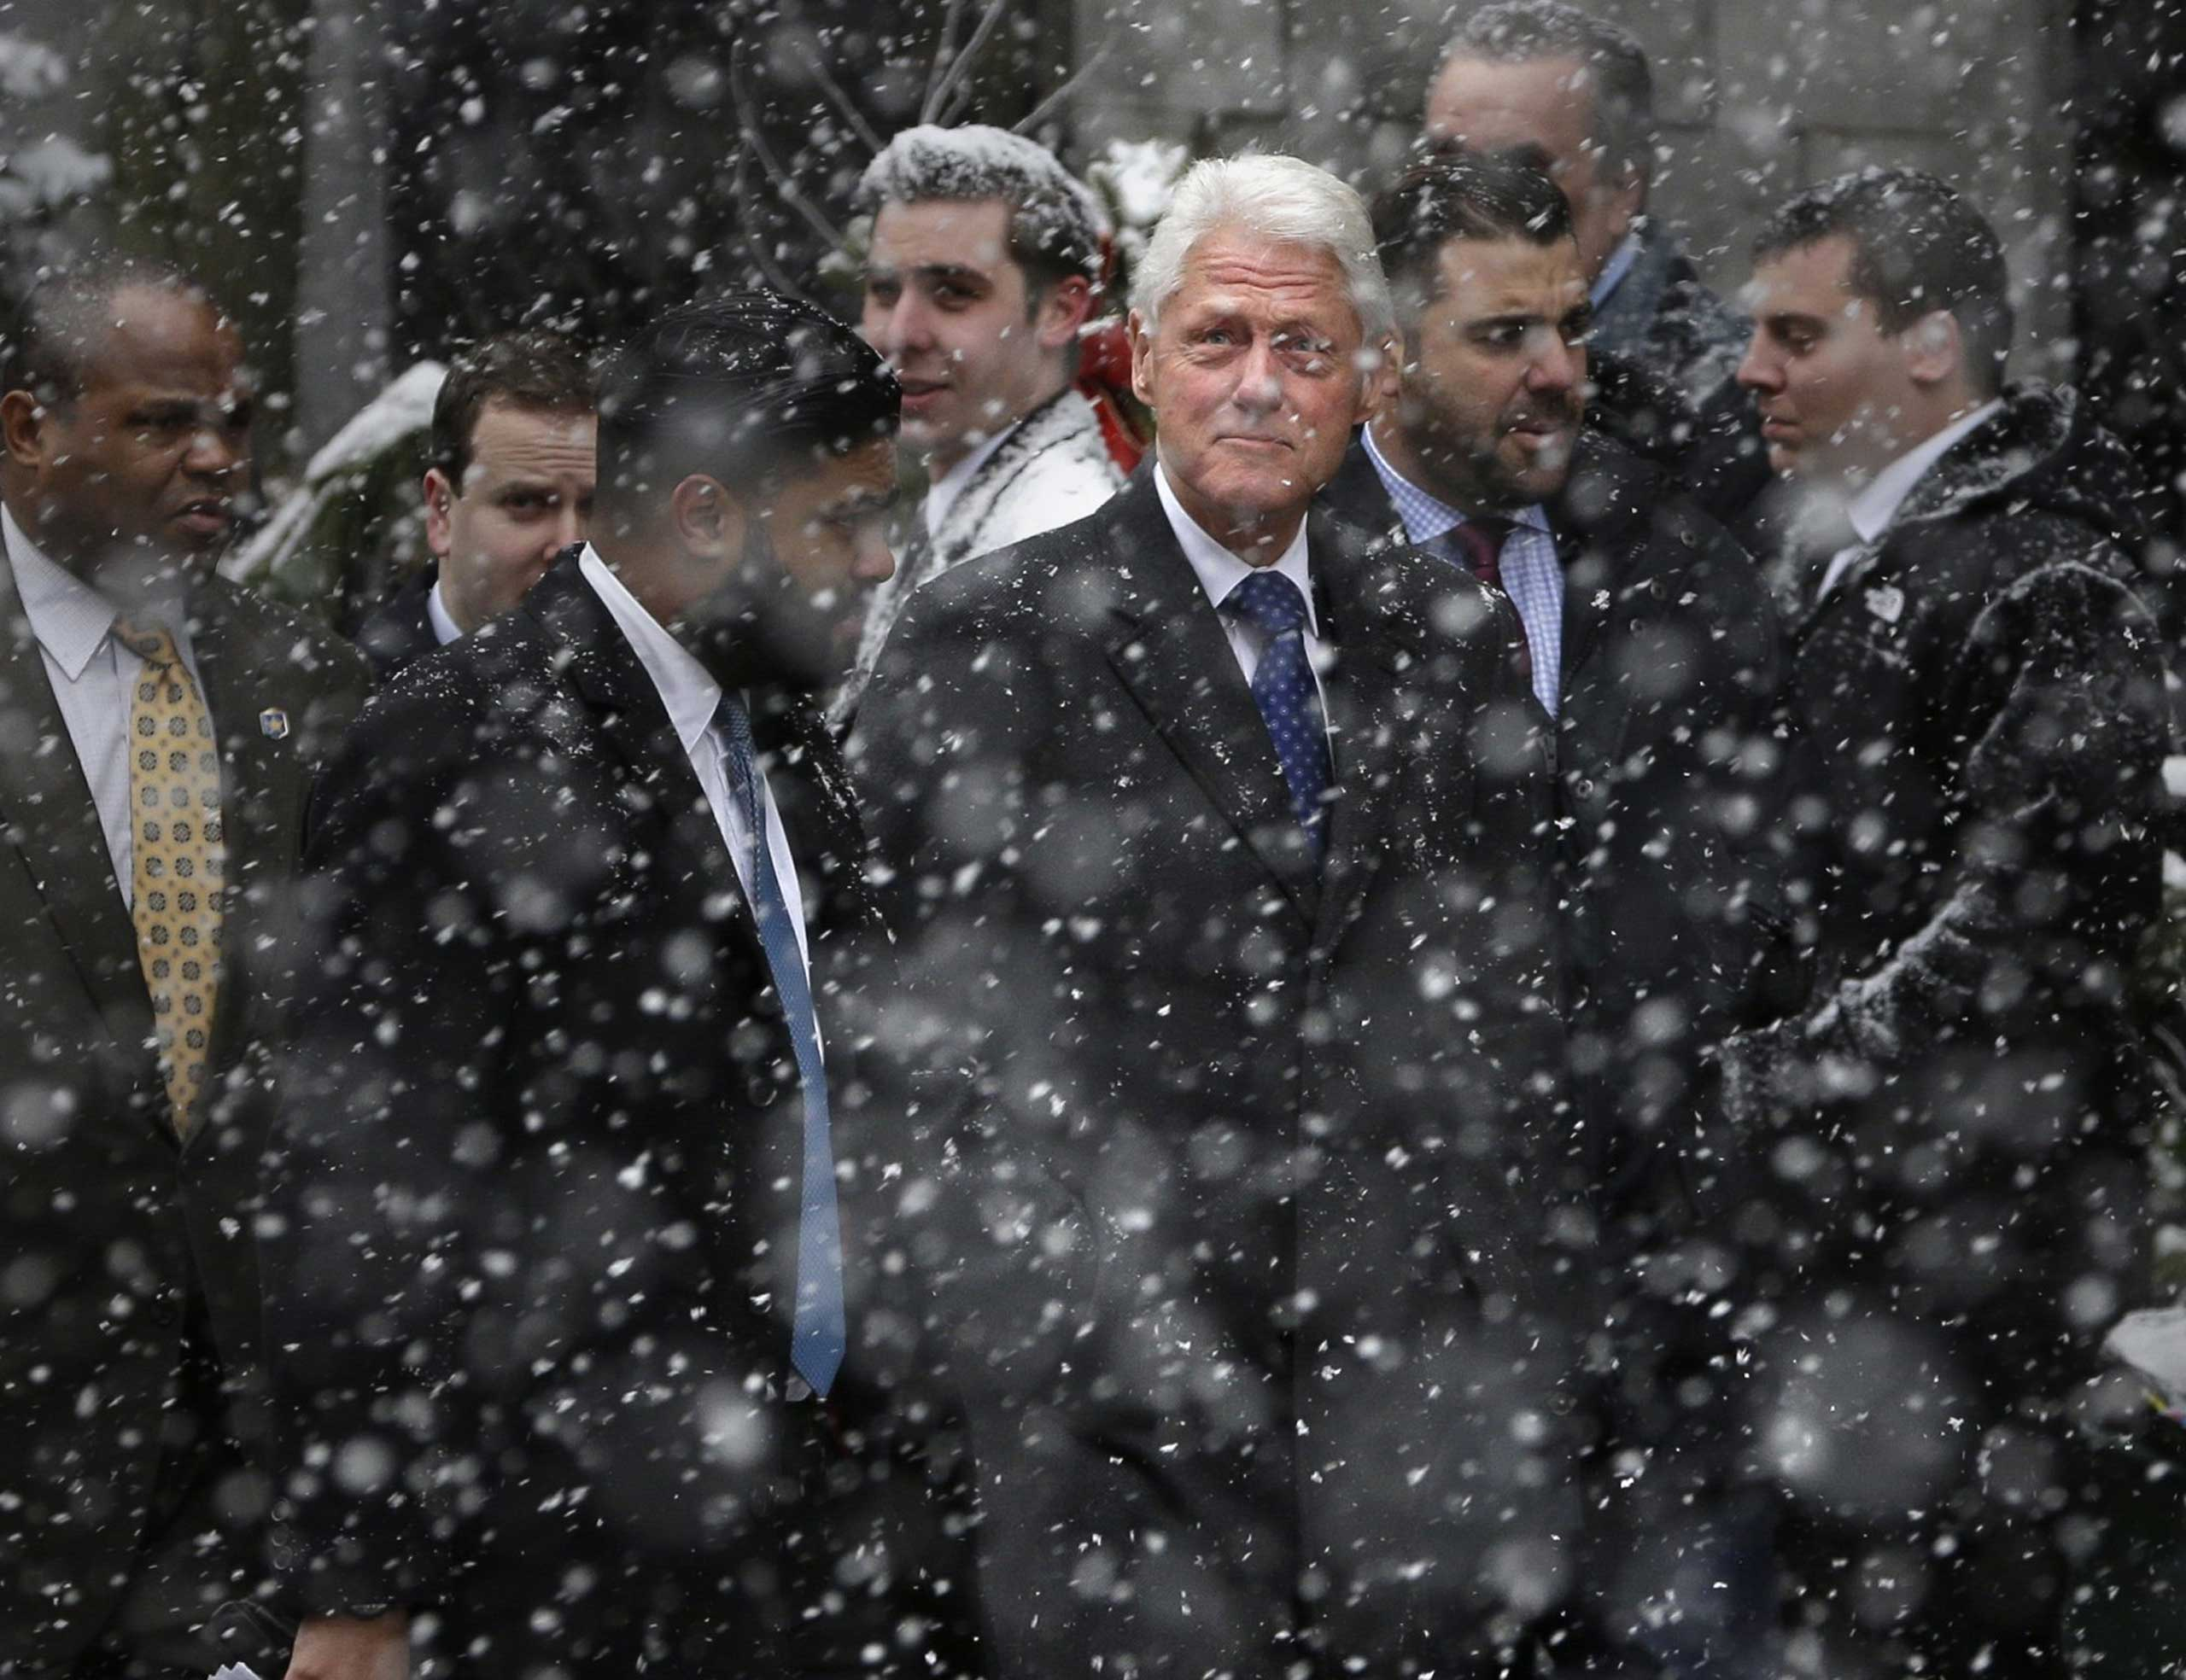 Former United States President Bill Clinton arrives for Mario Cuomo's funeral at the Church of St. Ignatius Loyola in New York on Jan. 6, 2015.